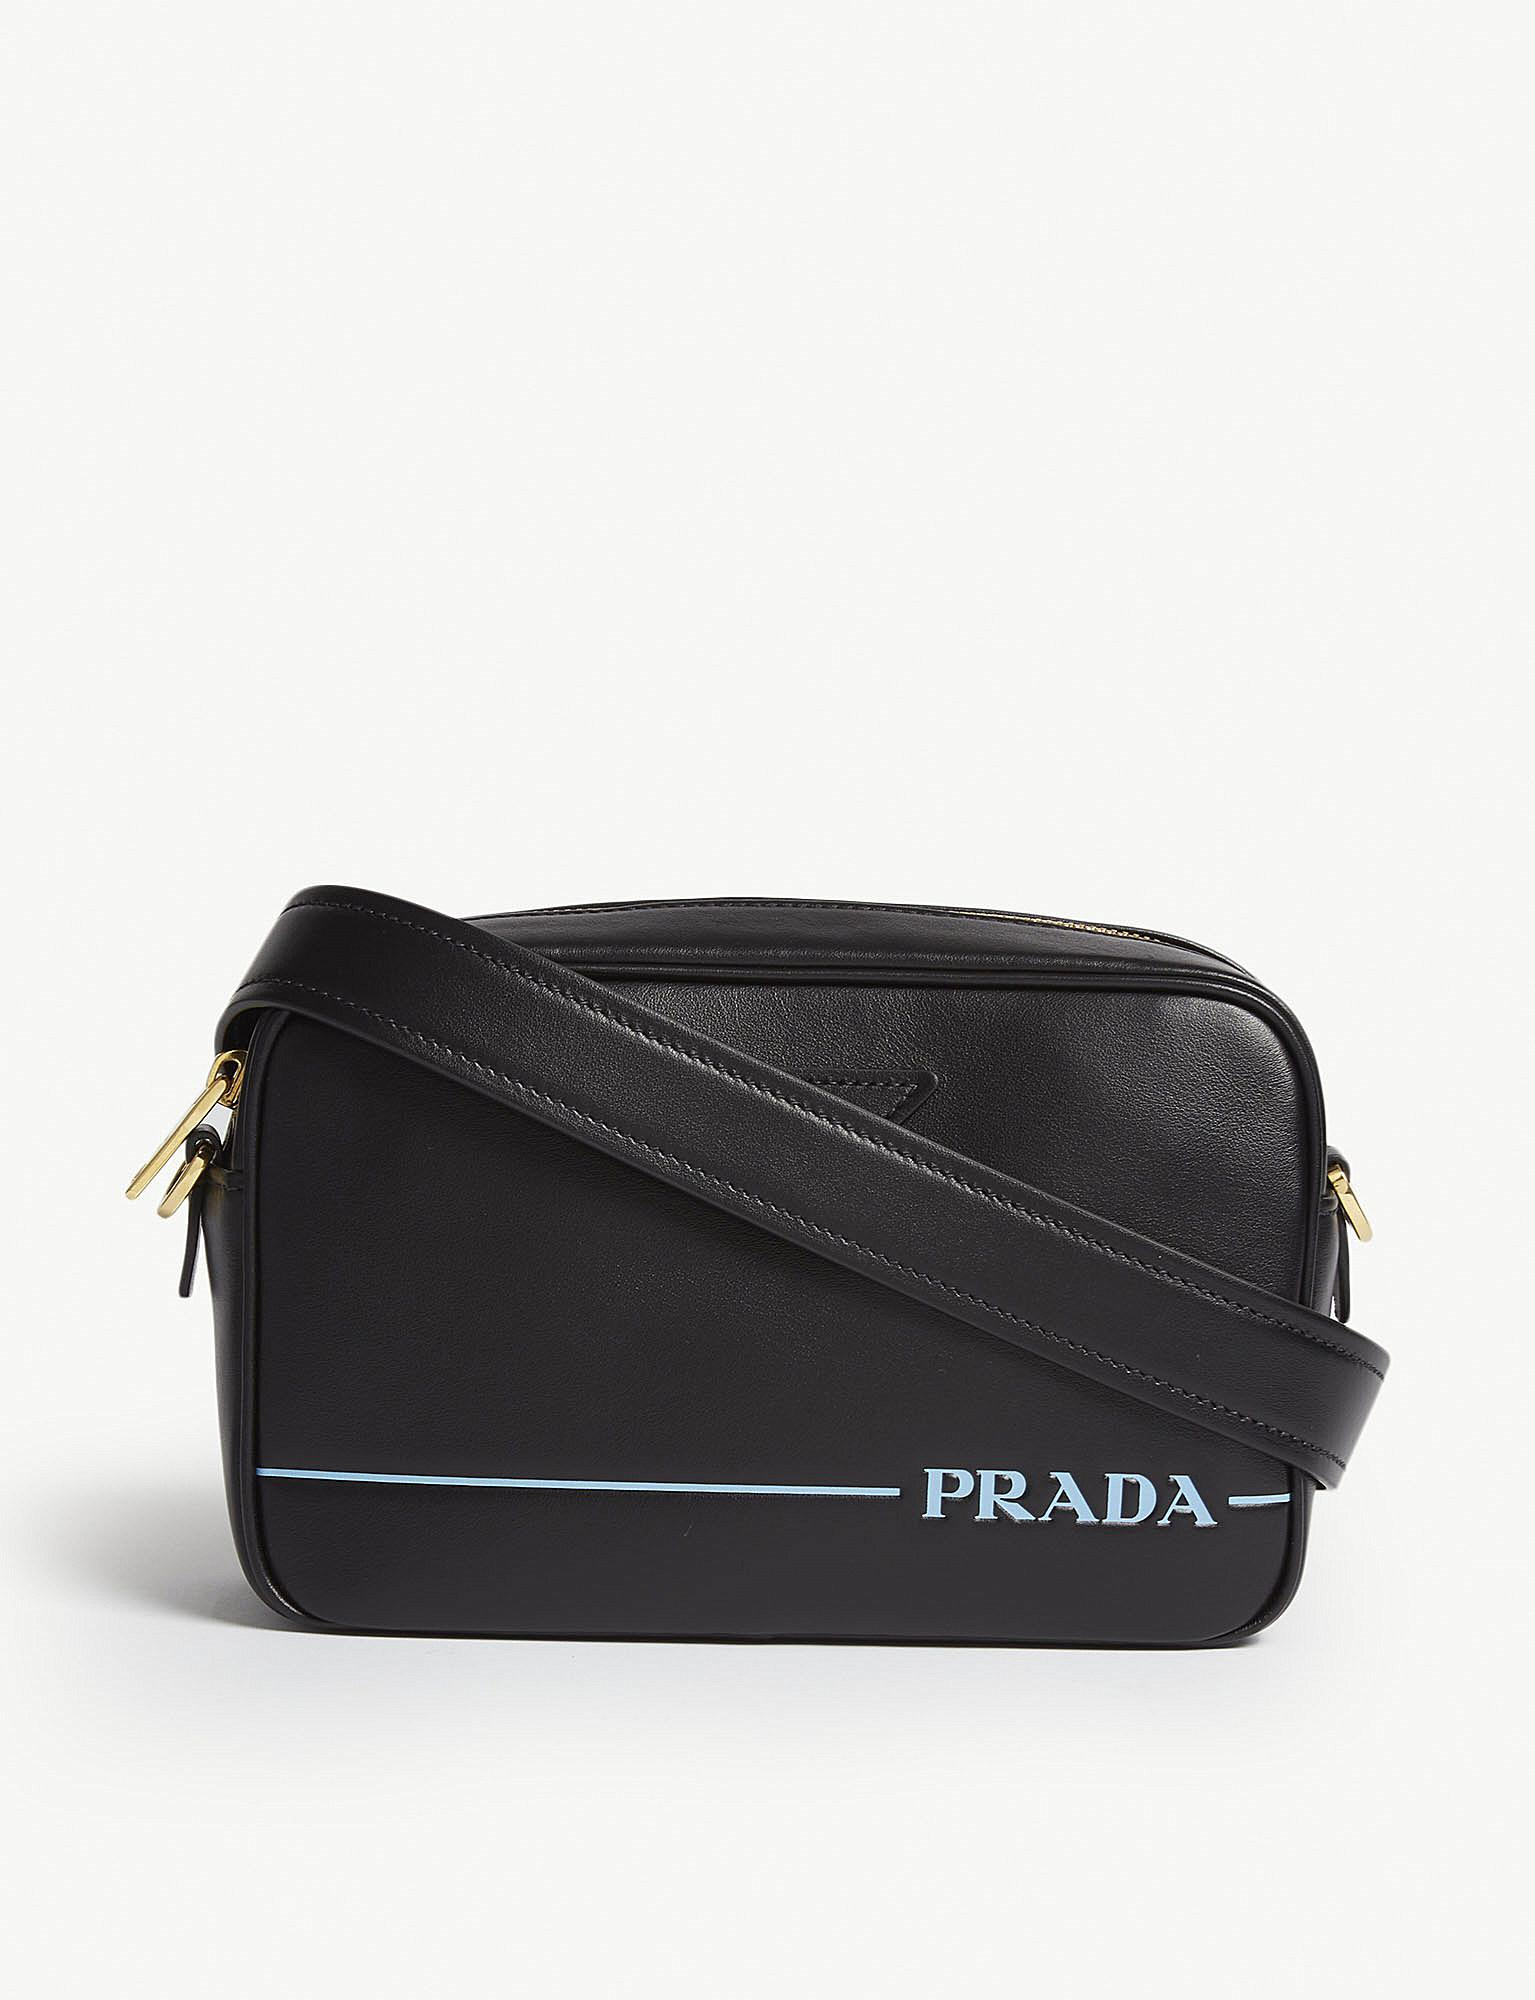 cbe912f7d1cd Prada - Black Leather Camera Cross Body Bag - Lyst. View fullscreen